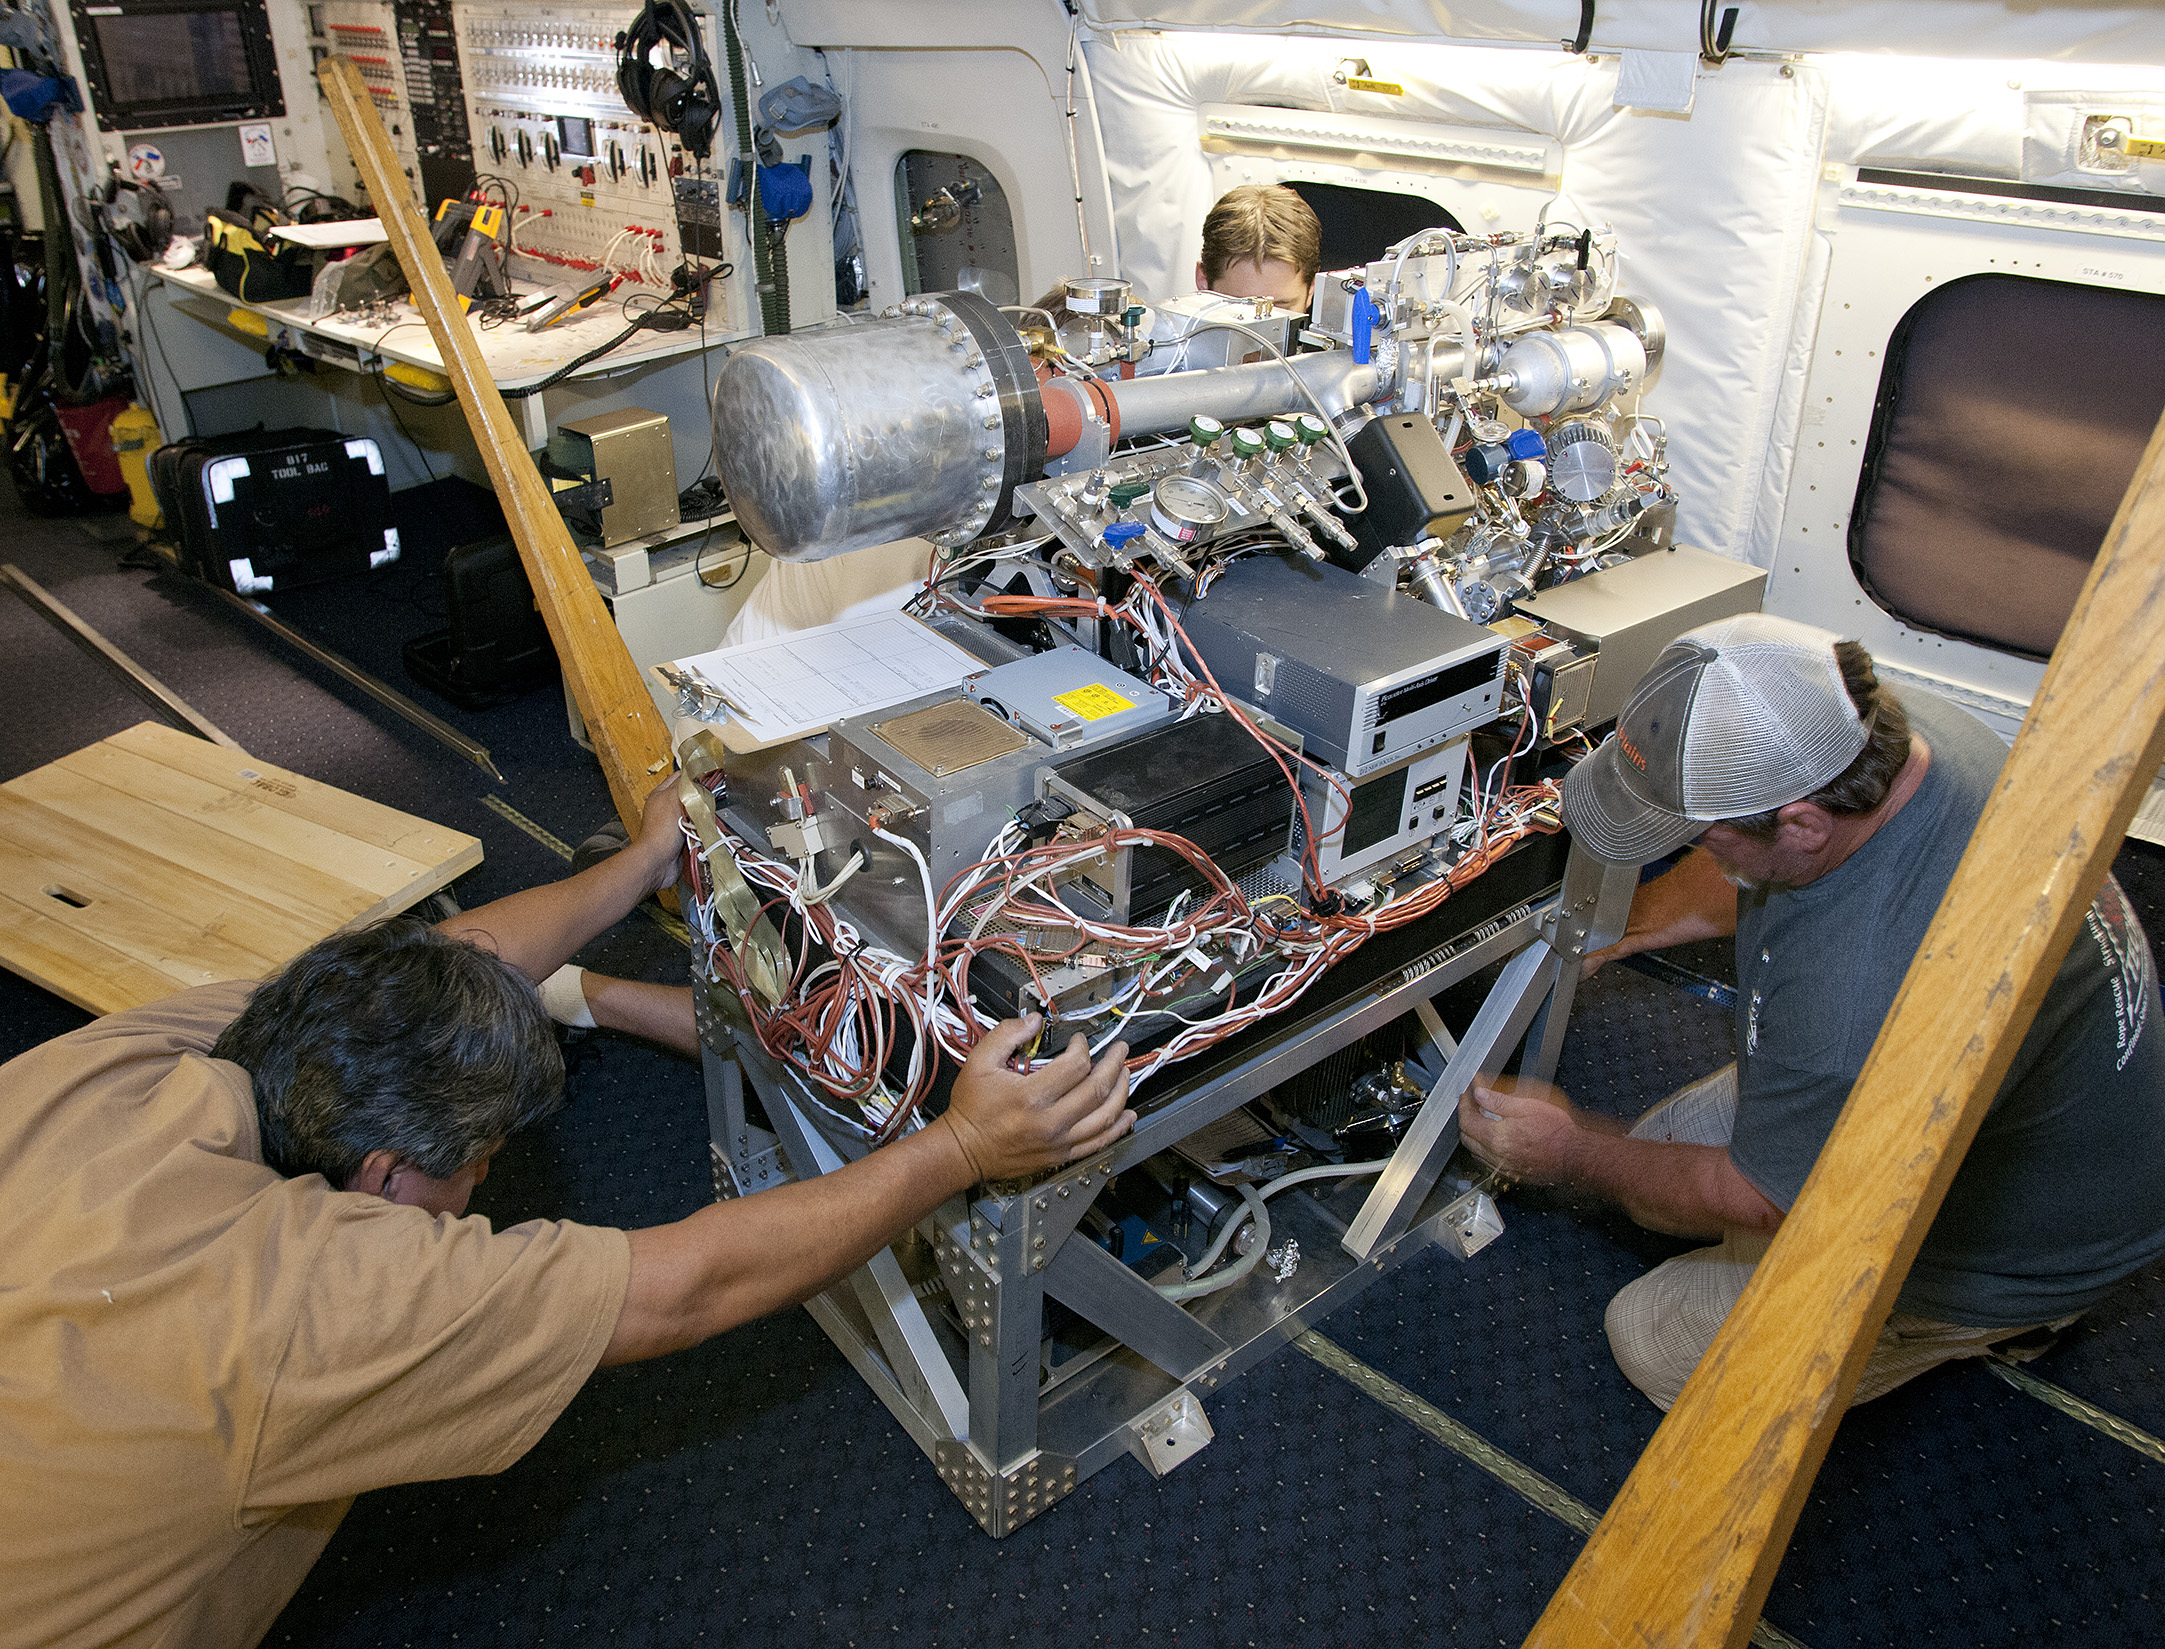 Scientists and technicians ready an instrument rack for mounting in NASA's DC-8 flying laboratory in preparation for a complex mission to study how air pollution and natural emissions affect climate change. Image Credit: NASA / Tom Tschida